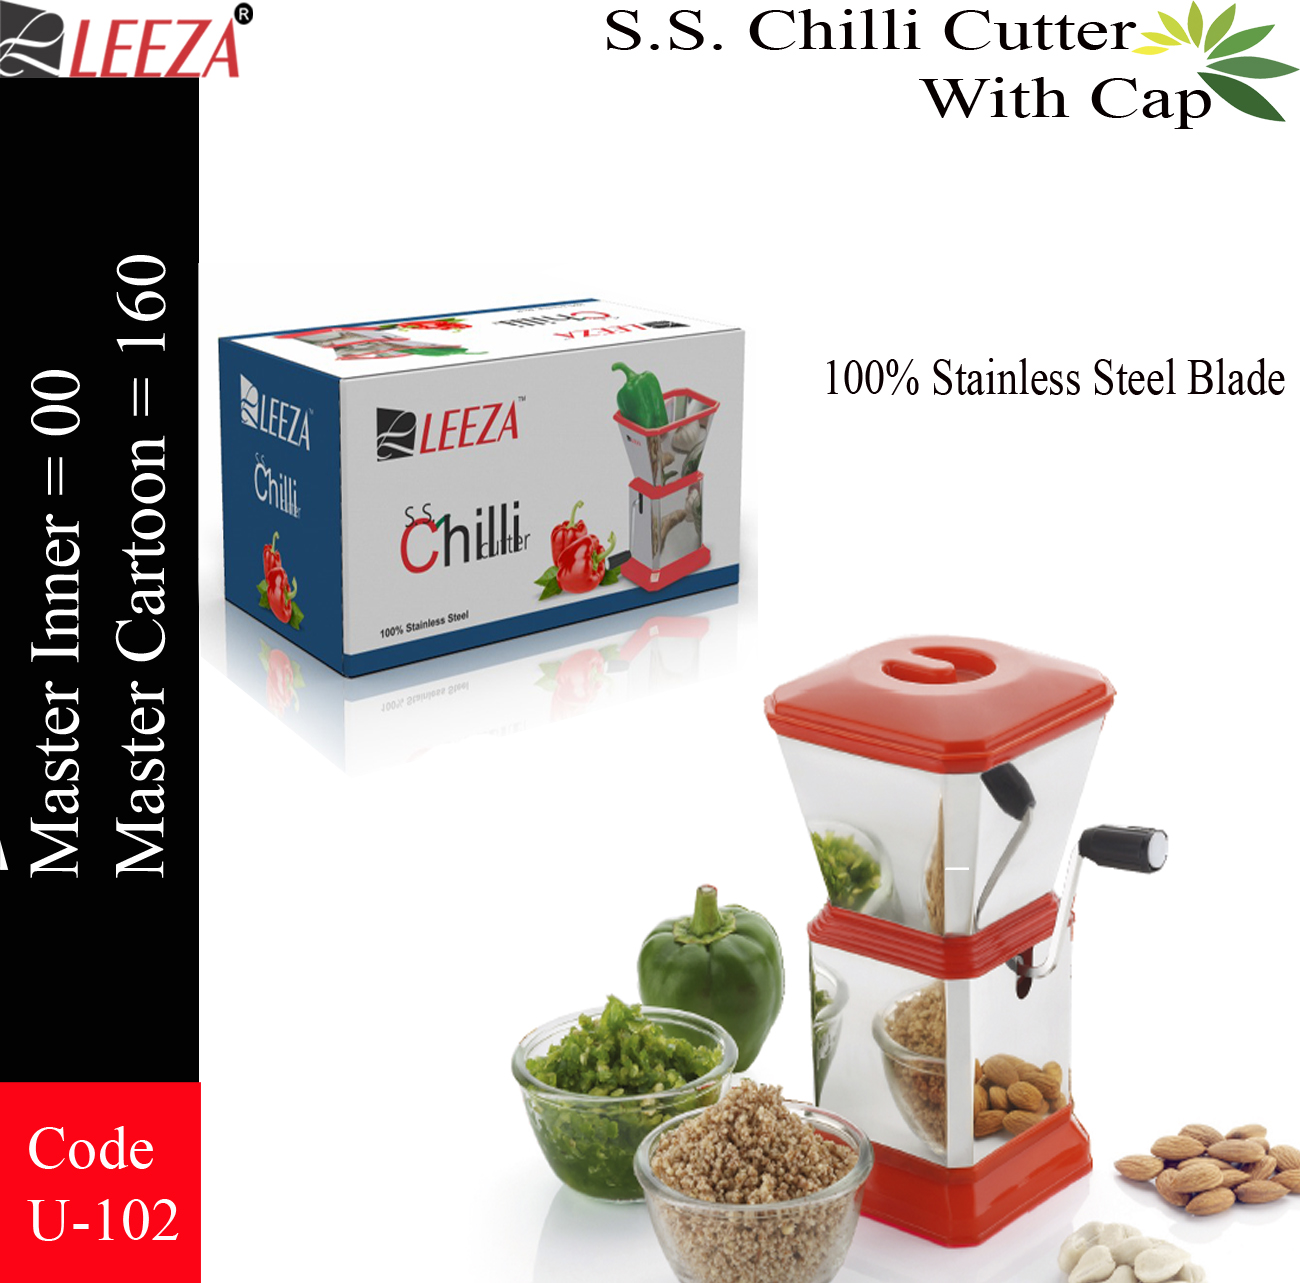 CHILI CUTTER with lid